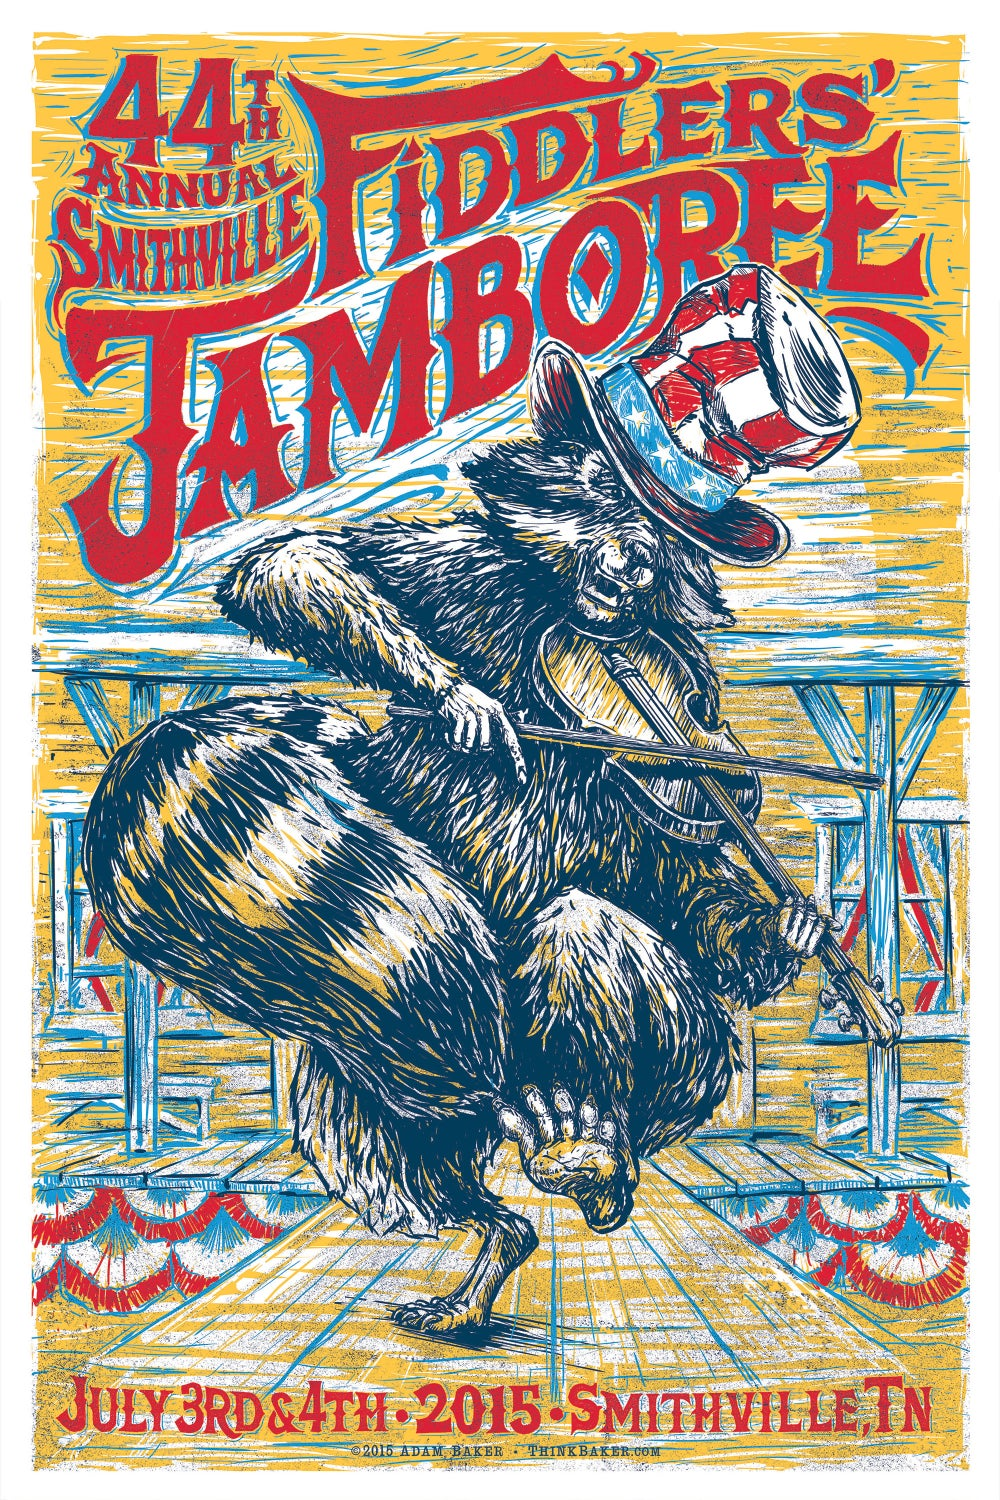 44th Annual  Smithville Fiddlers' Jamboree Screenprint Poster